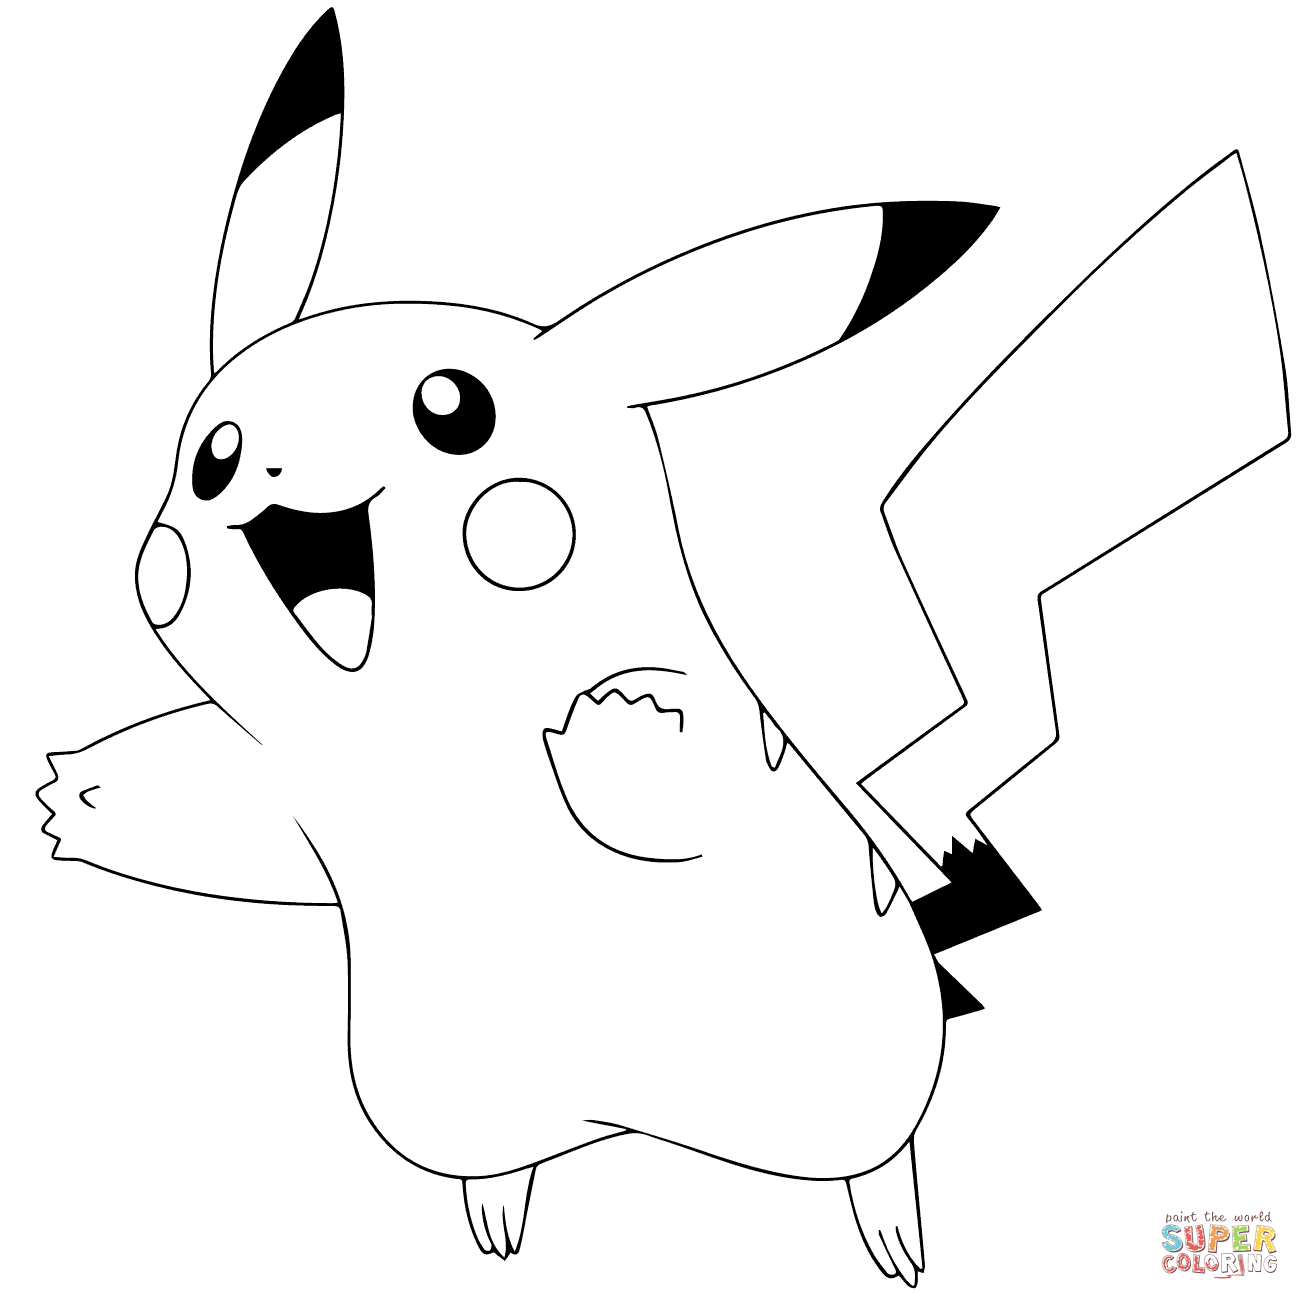 Pokémon Go Pikachu Coloring Page Free Printable Coloring Pages